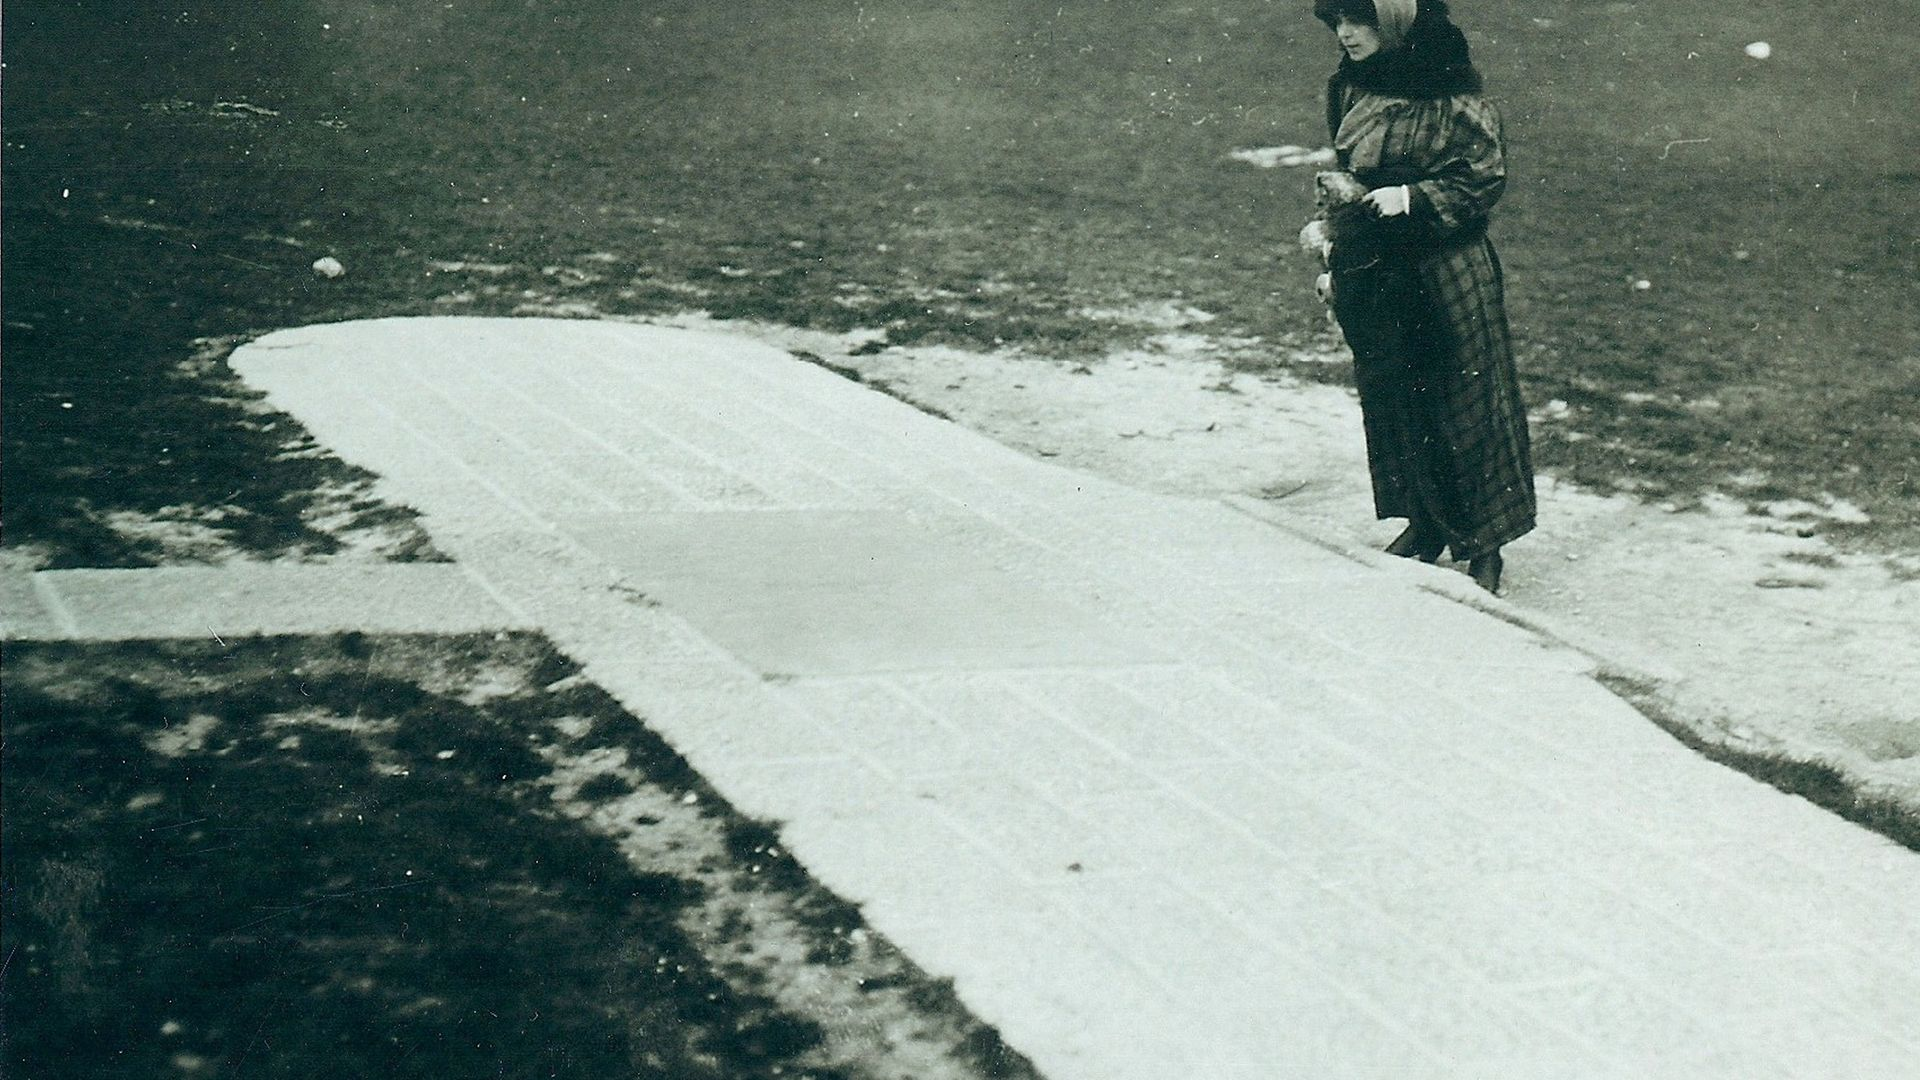 Harriet Quimby, the day before her epic flight of April 16, 1912, at the Blériot Monument - Credit: Giacinta Koontz